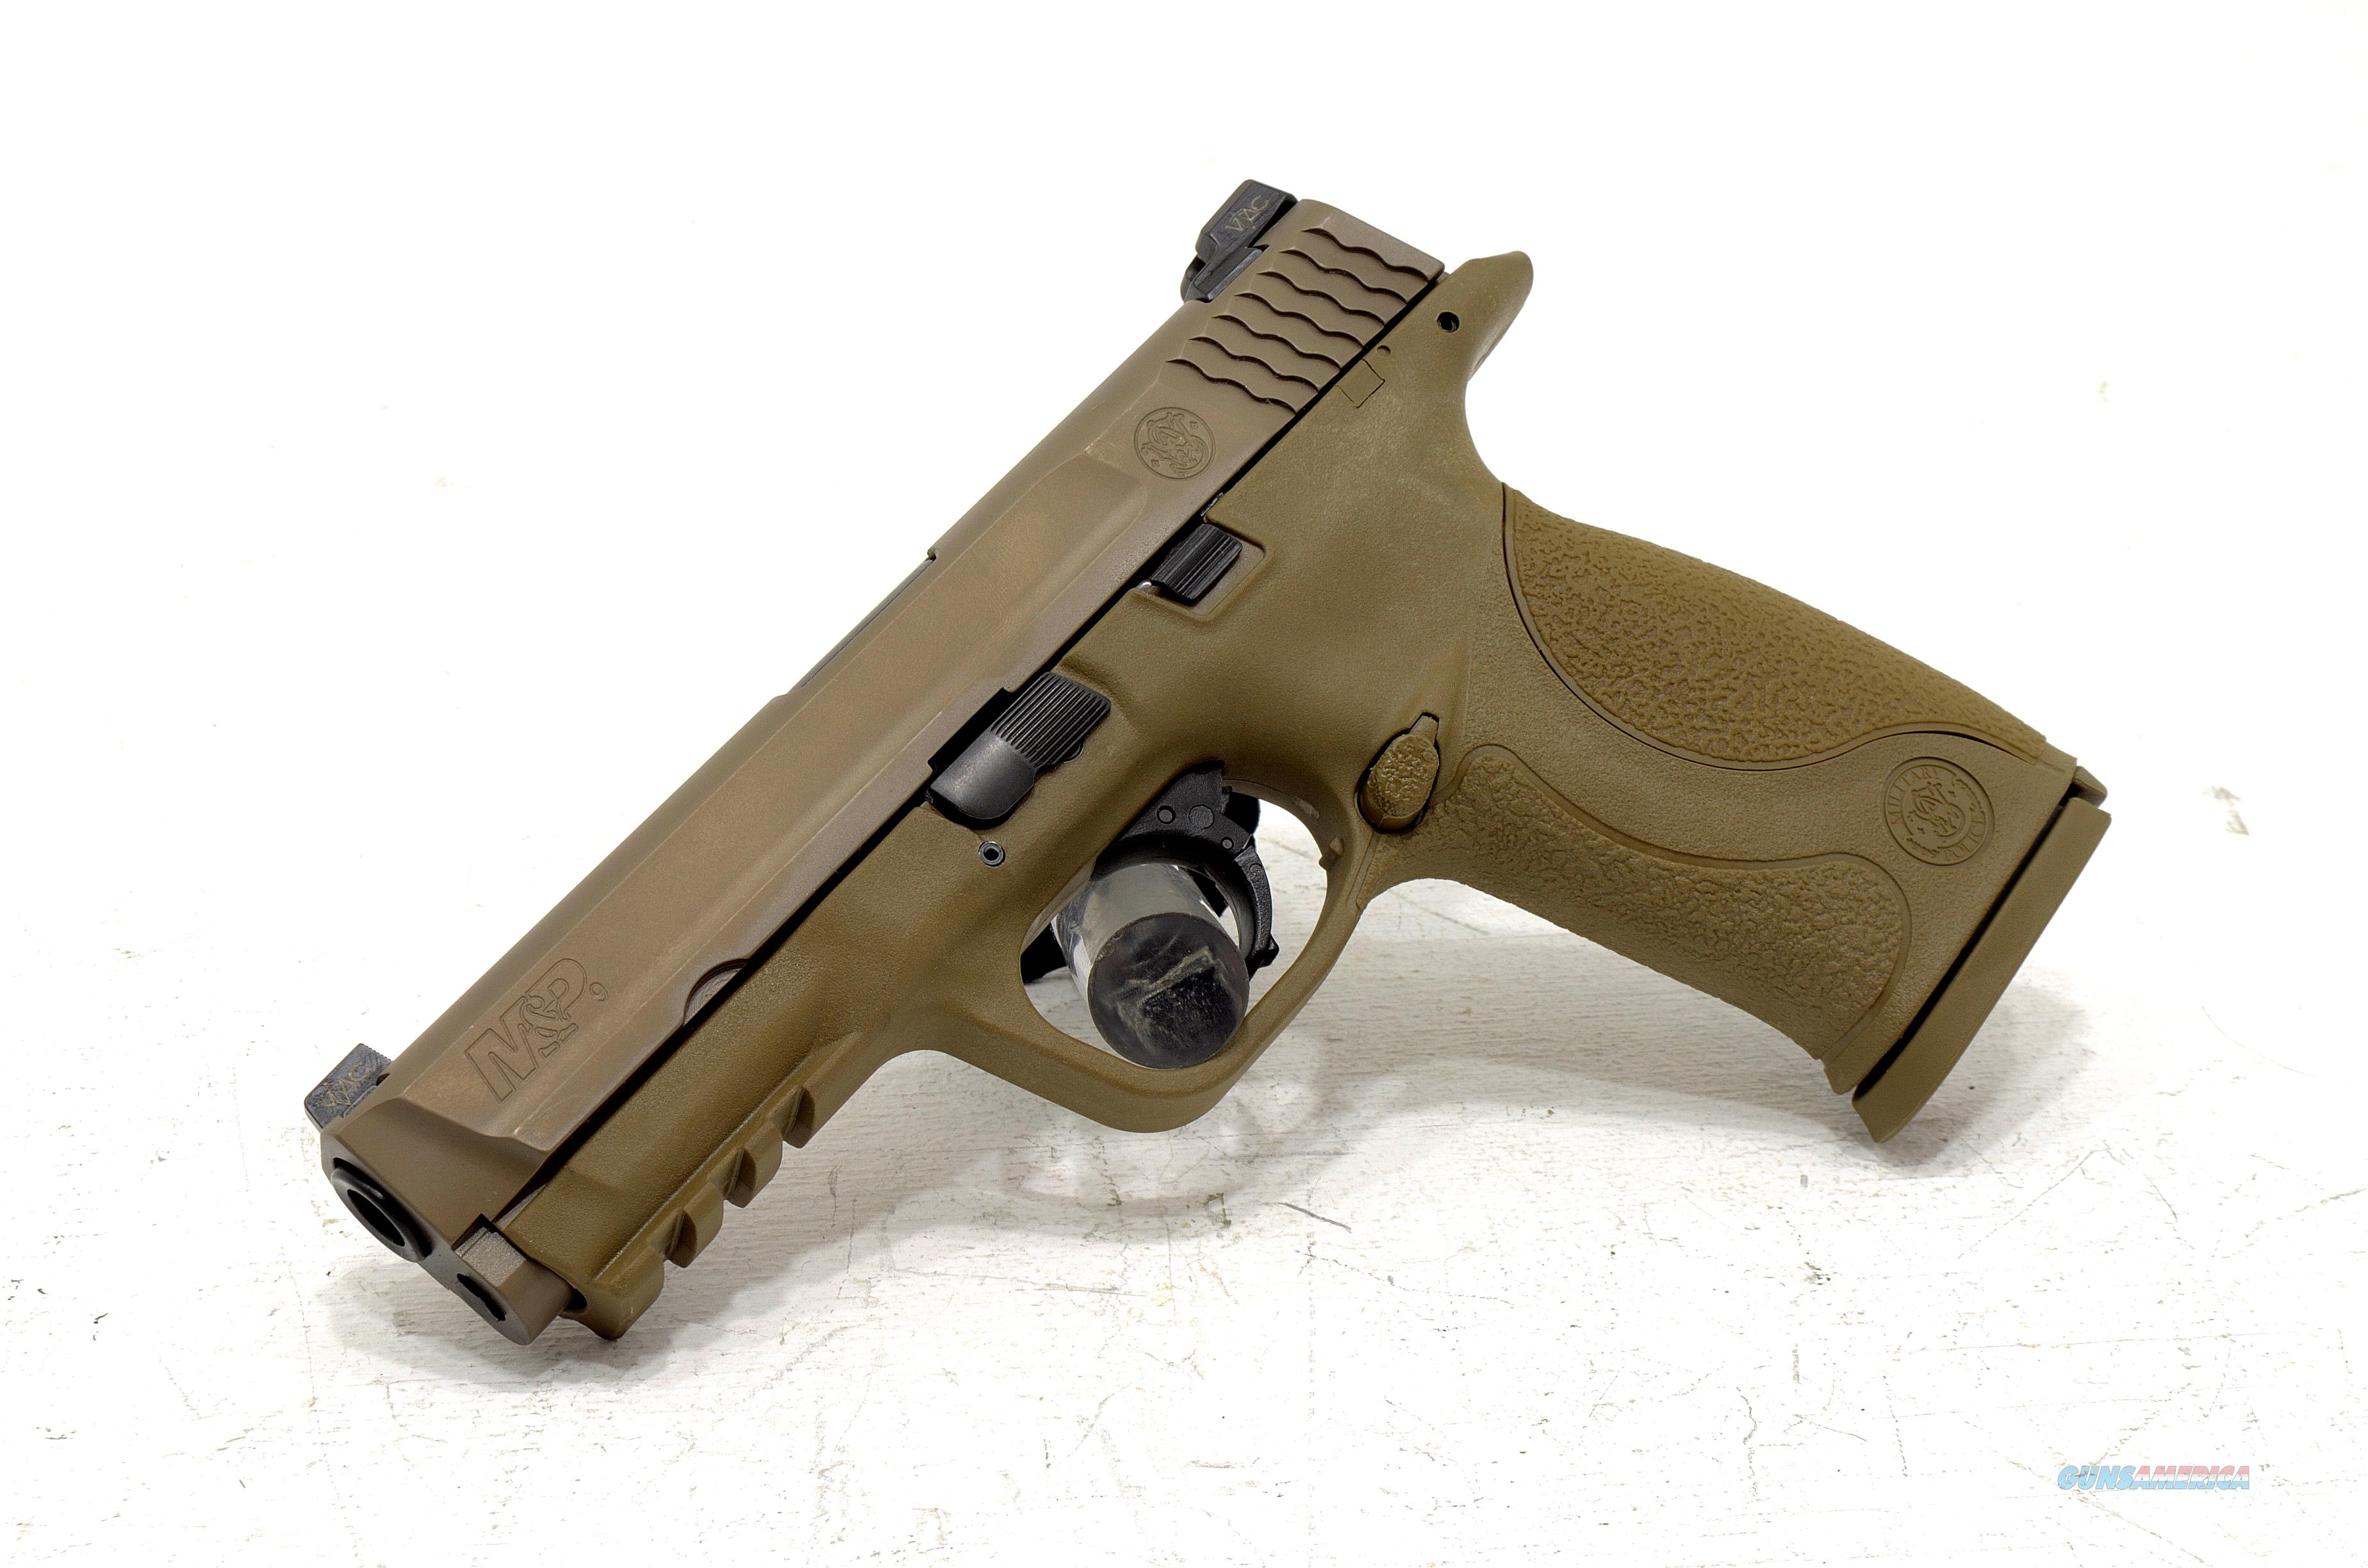 NEW SMITH & WESSON M&P9 VTAC FDE 9mm  Guns > Pistols > Smith & Wesson Pistols - Autos > Polymer Frame